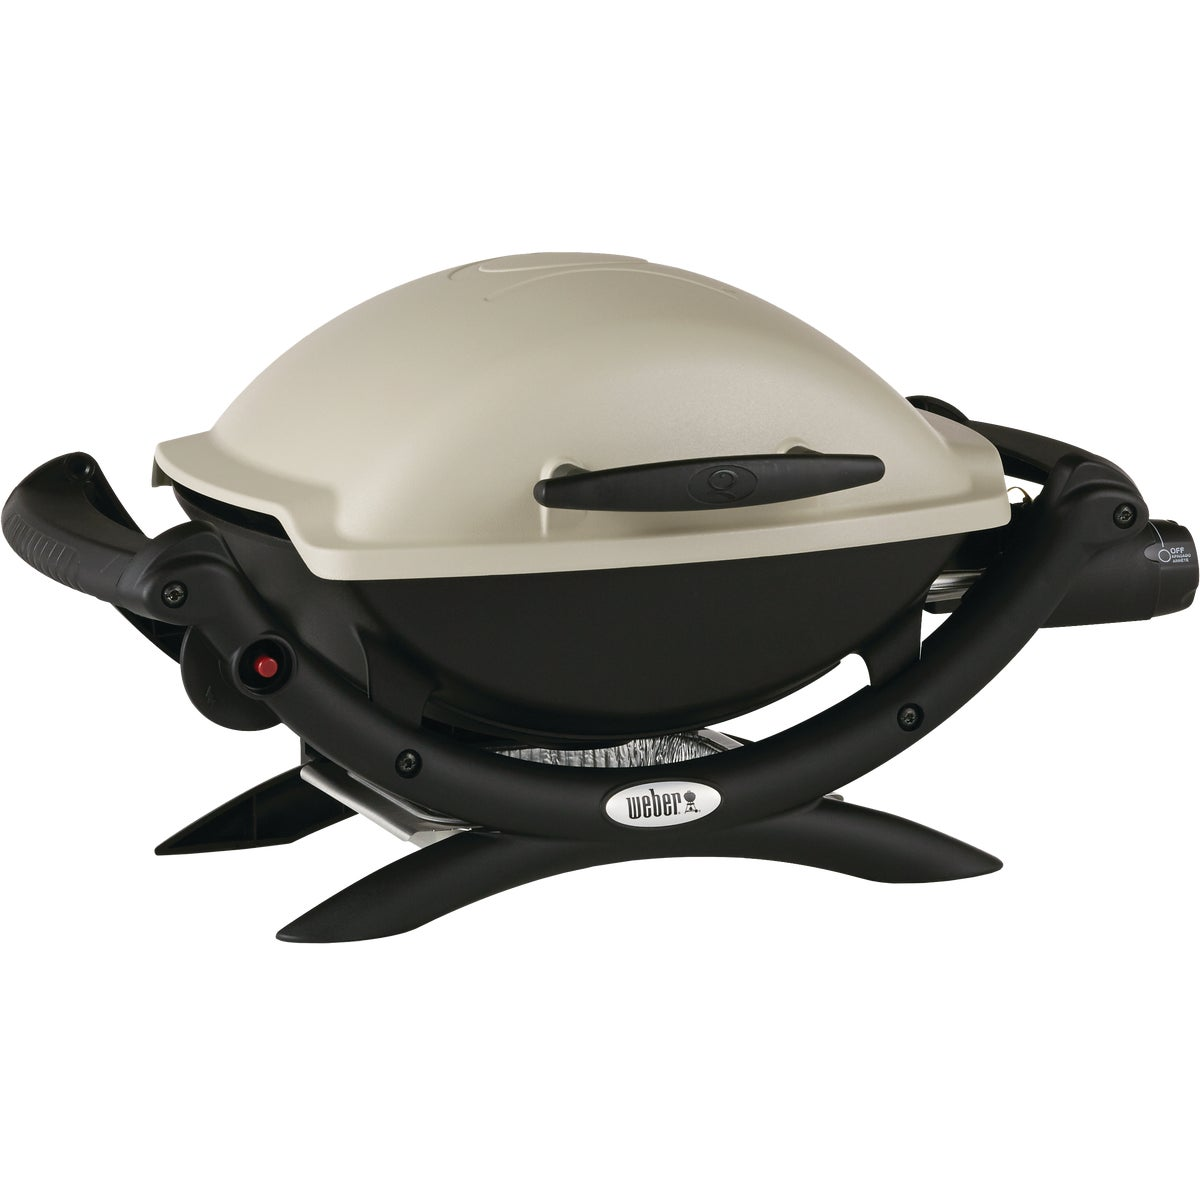 Q1000  LP GAS GRILL - 50060001 by Weber